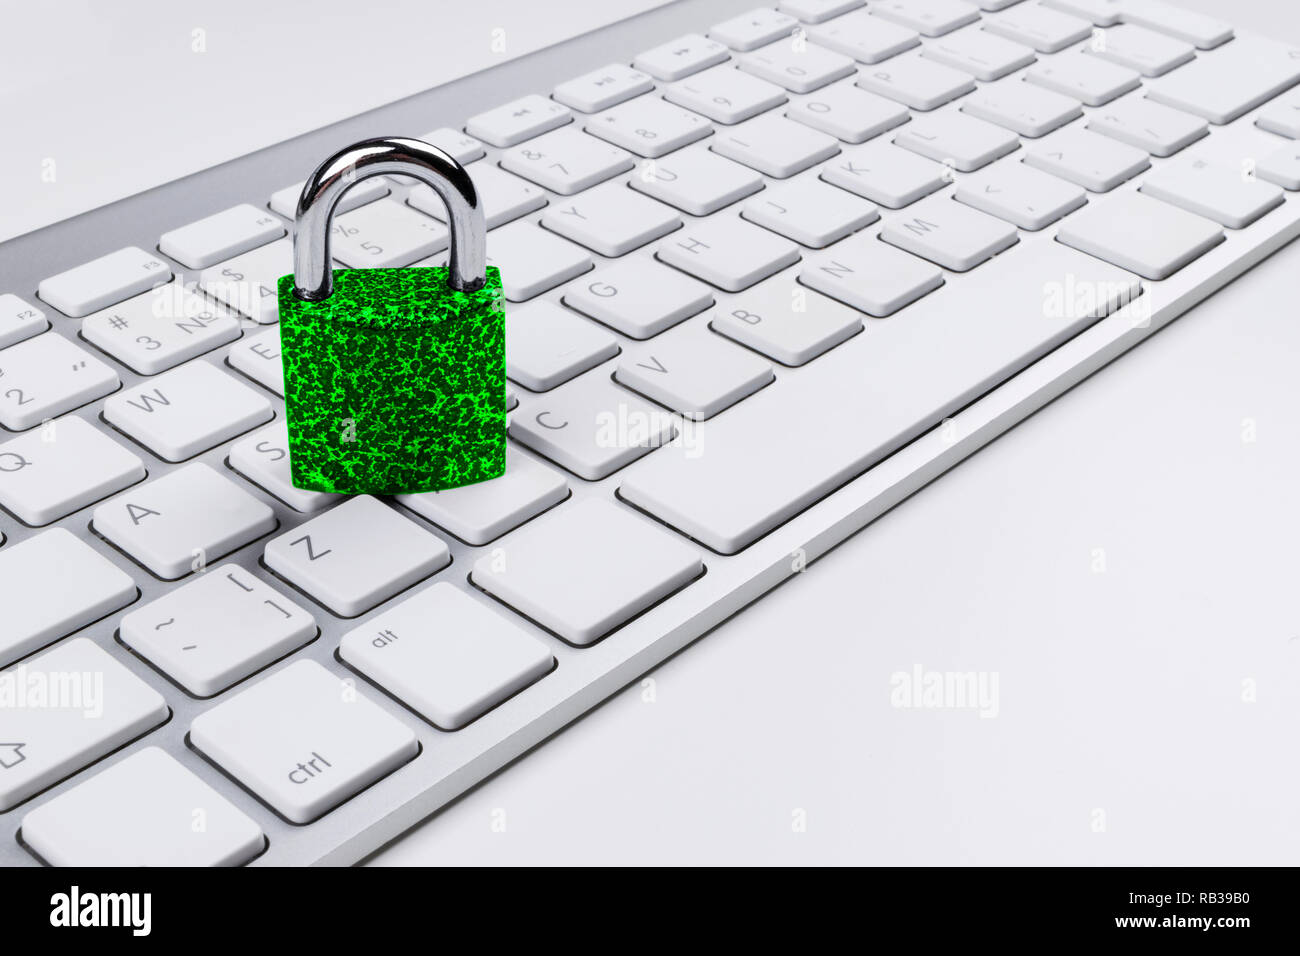 Locked computer safe from virus or malware attack. Laptop computer being protected from online cyber crime and hacking. Computer security concept with Stock Photo